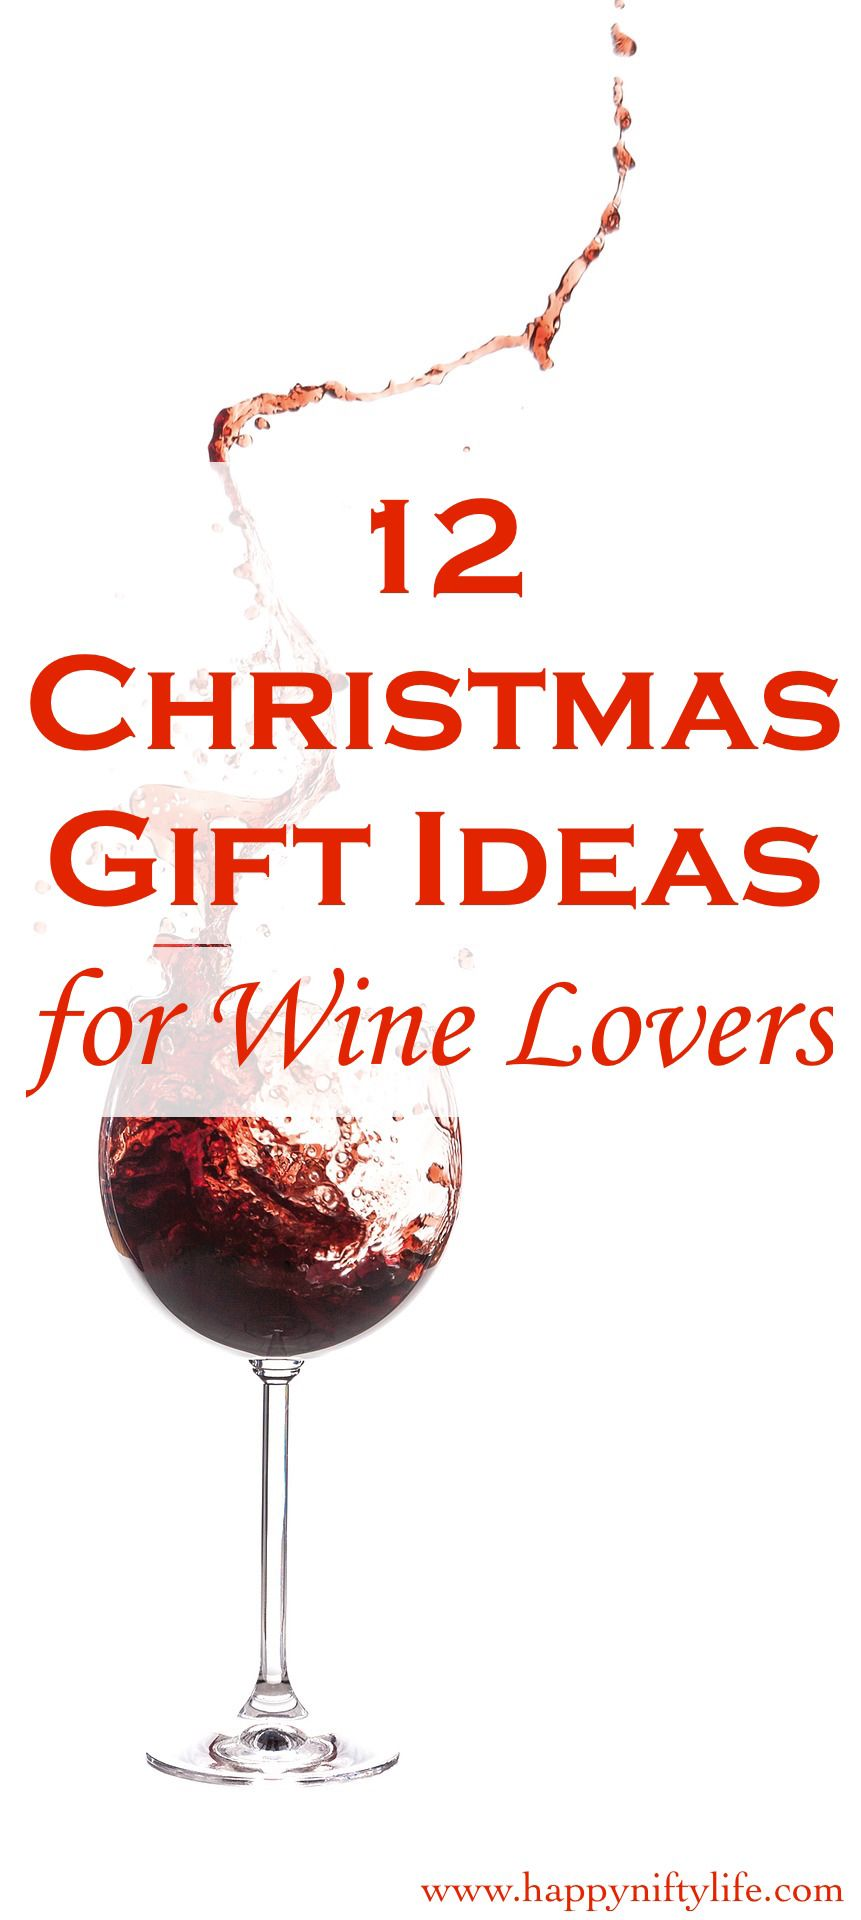 12 irresistible gift ideas for wine lovers | Christmas gifts, Lovers ...